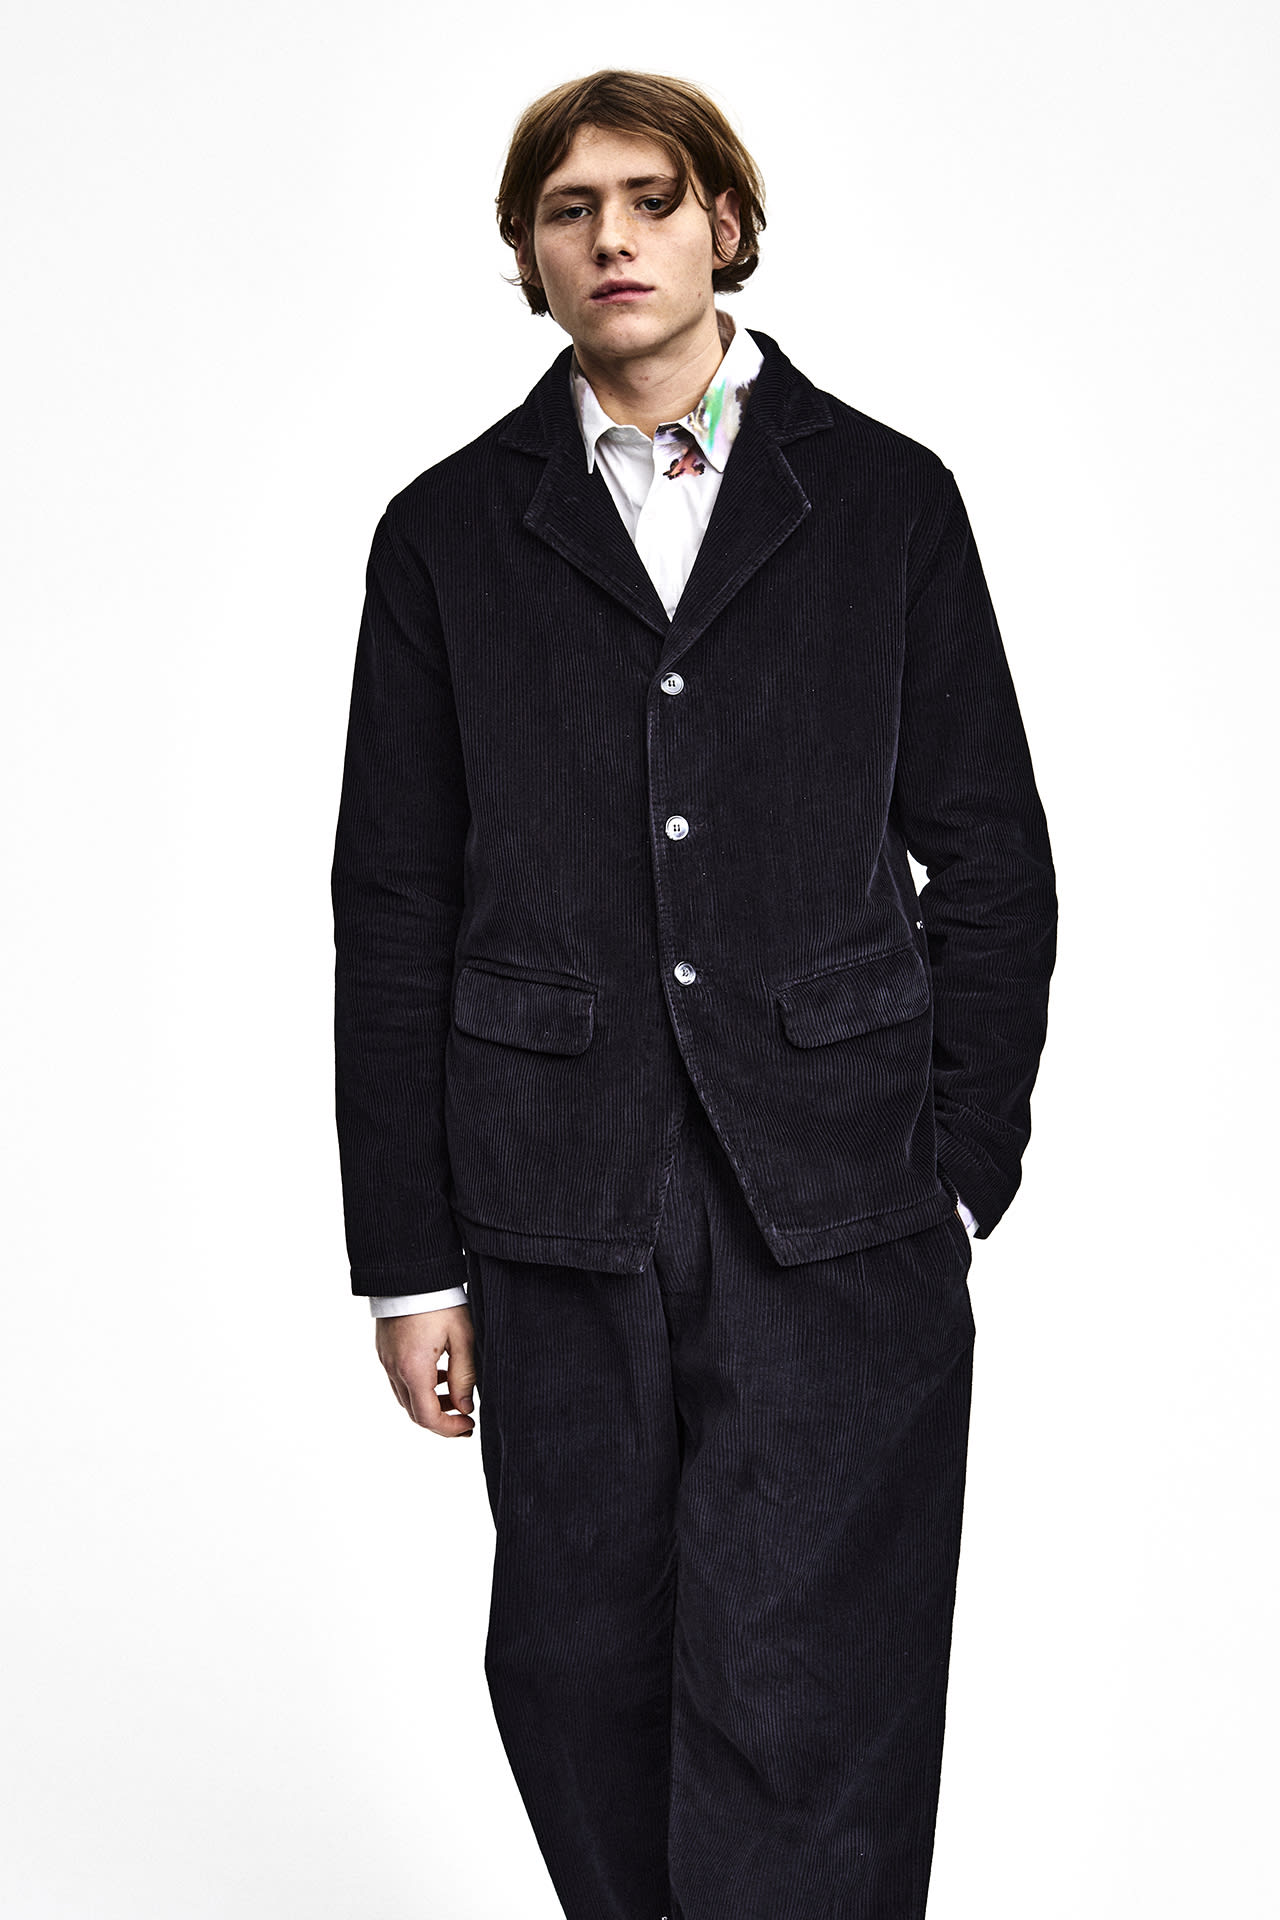 Pop Trading Company AW20 Look Book